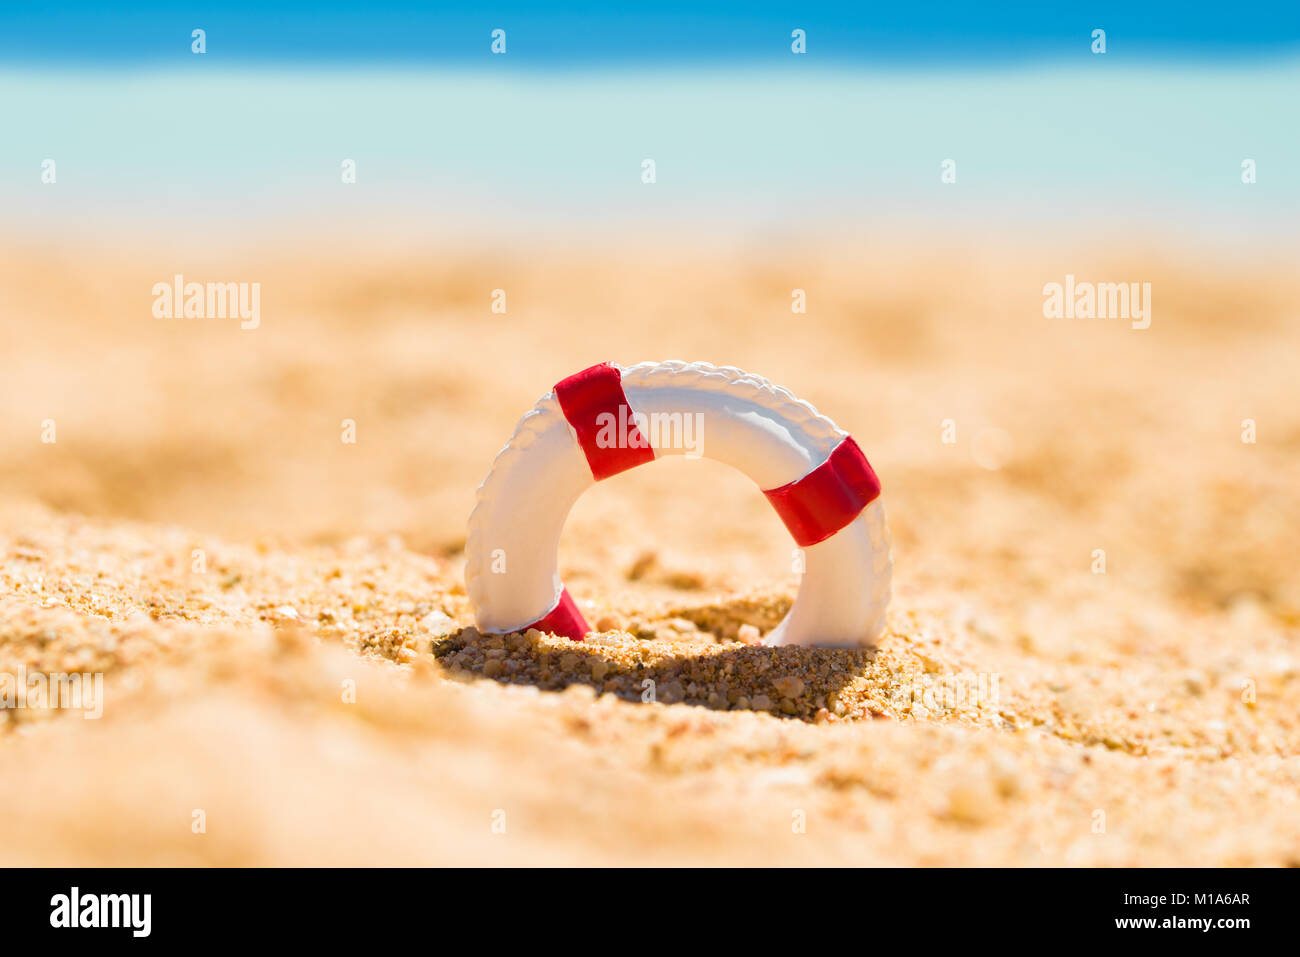 Miniature White And Red Lifebuoy In Sand At Beach - Stock Image